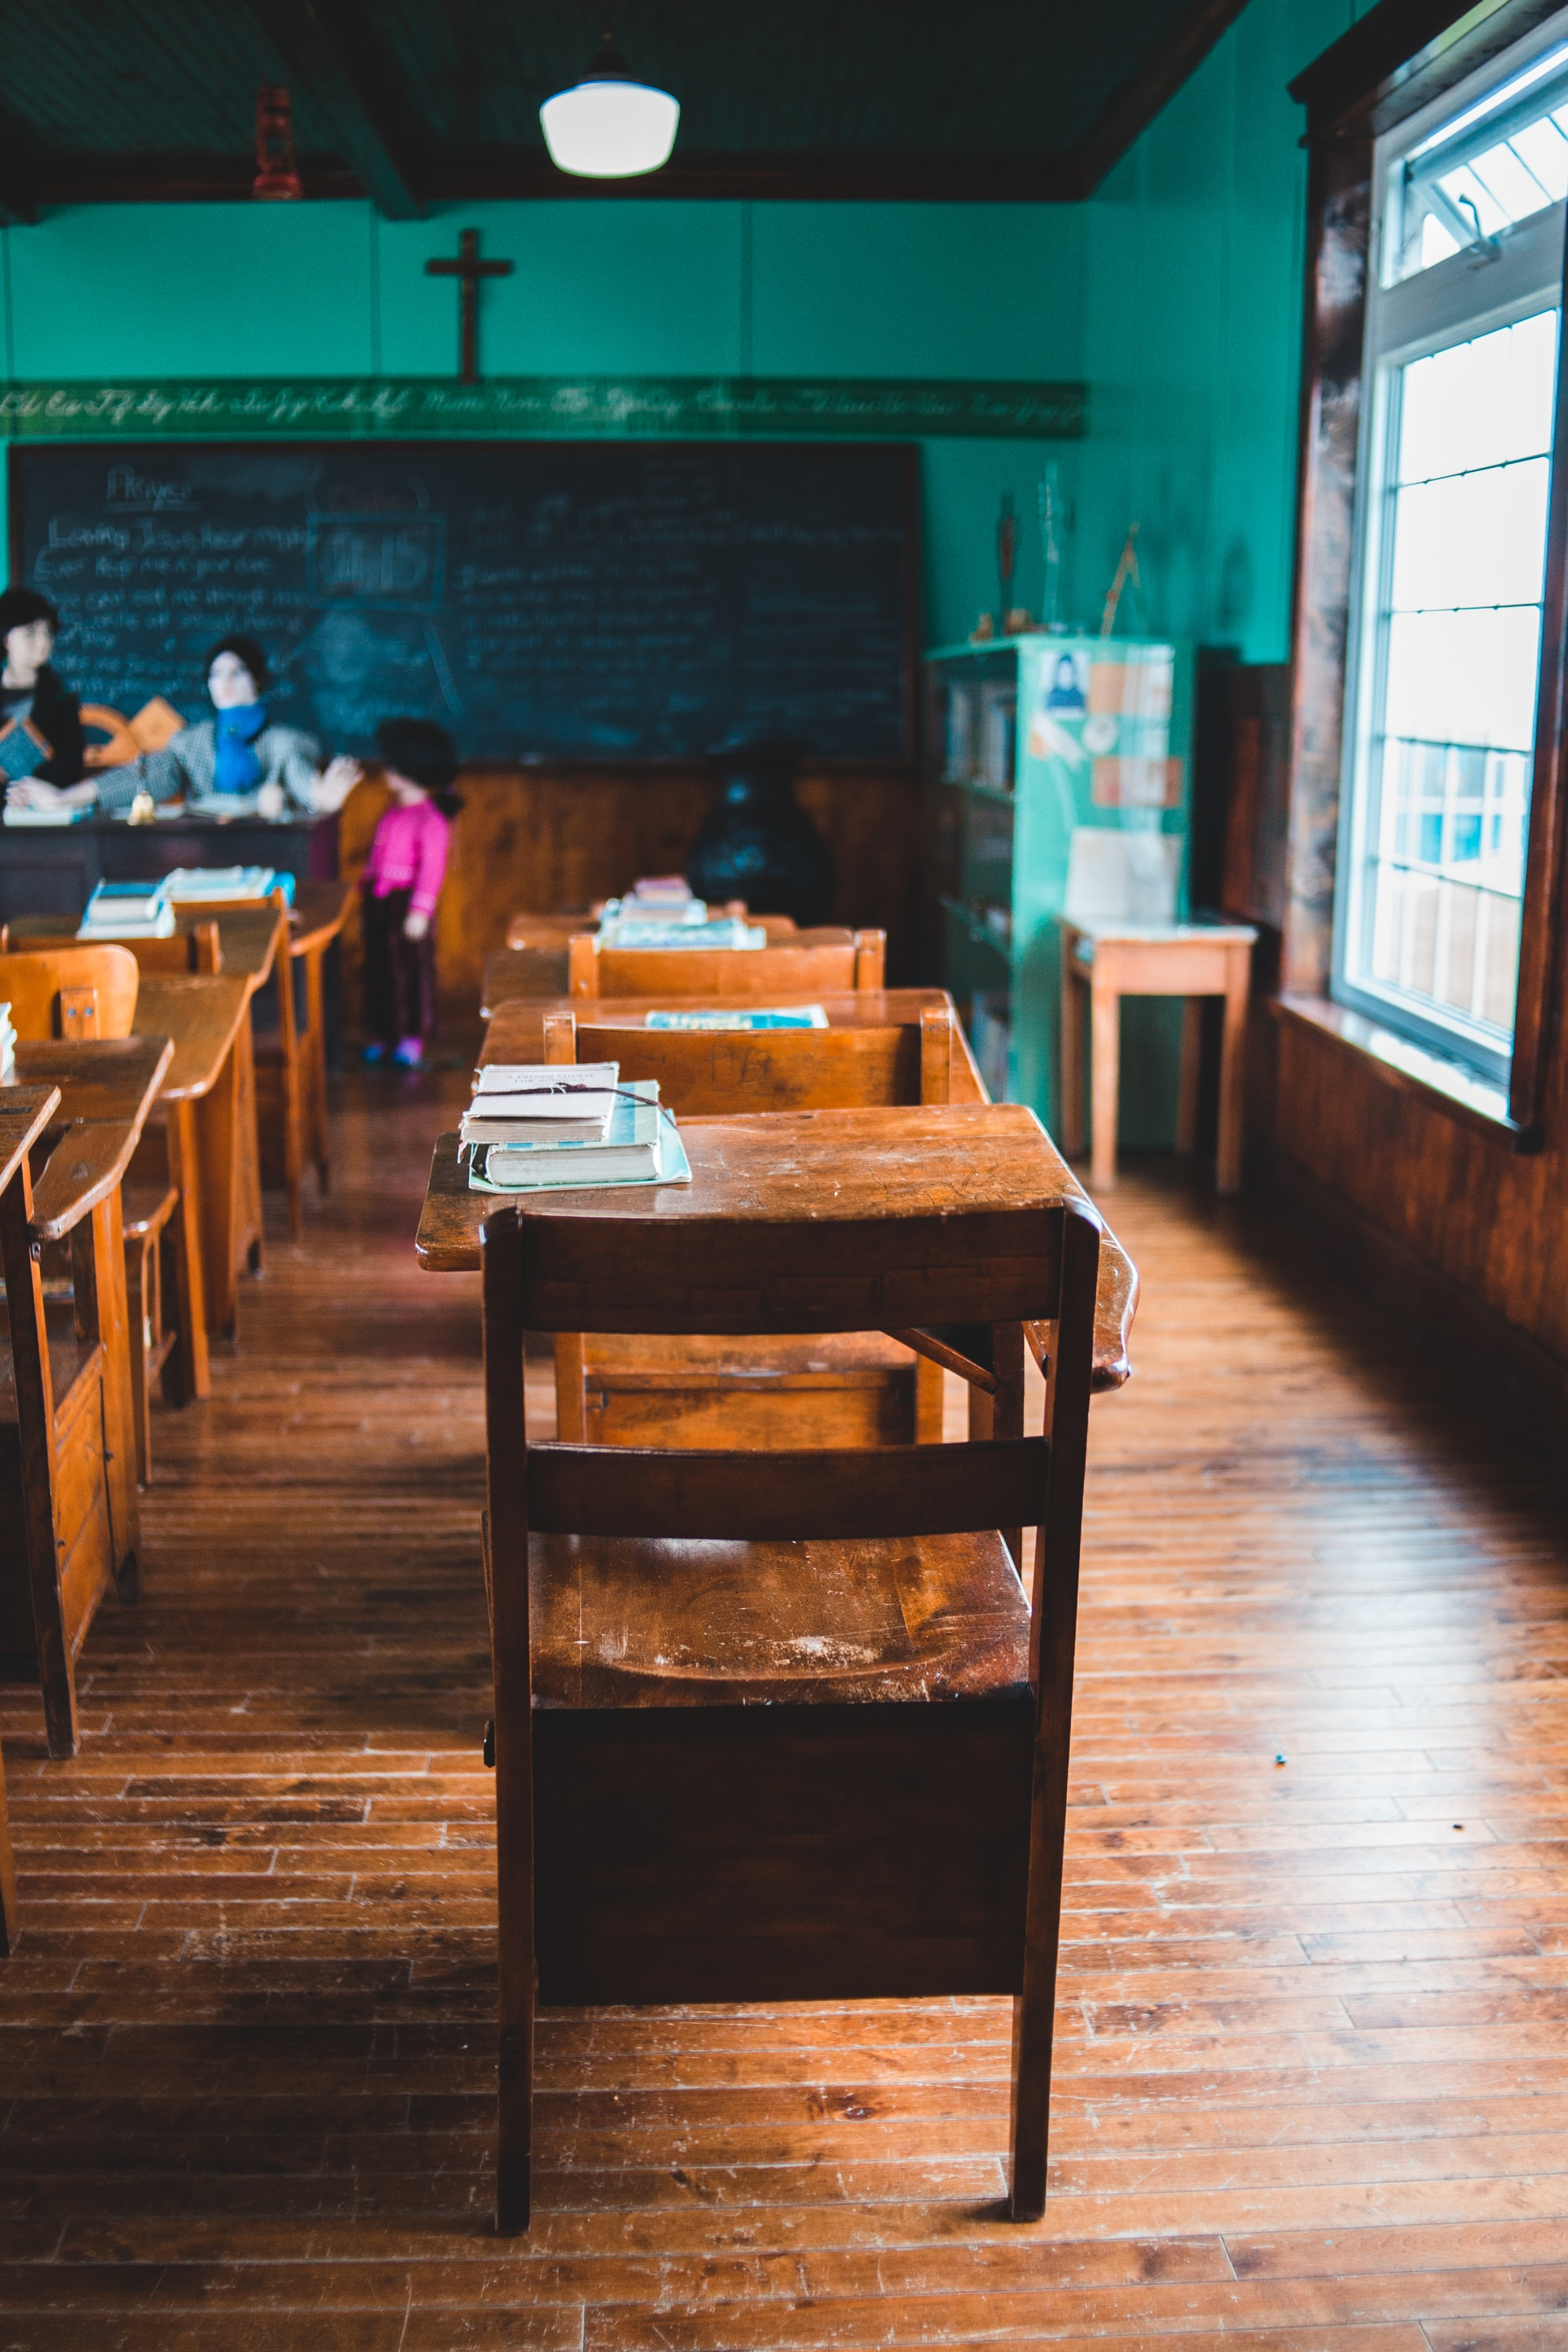 Returning to a traditional classroom setting